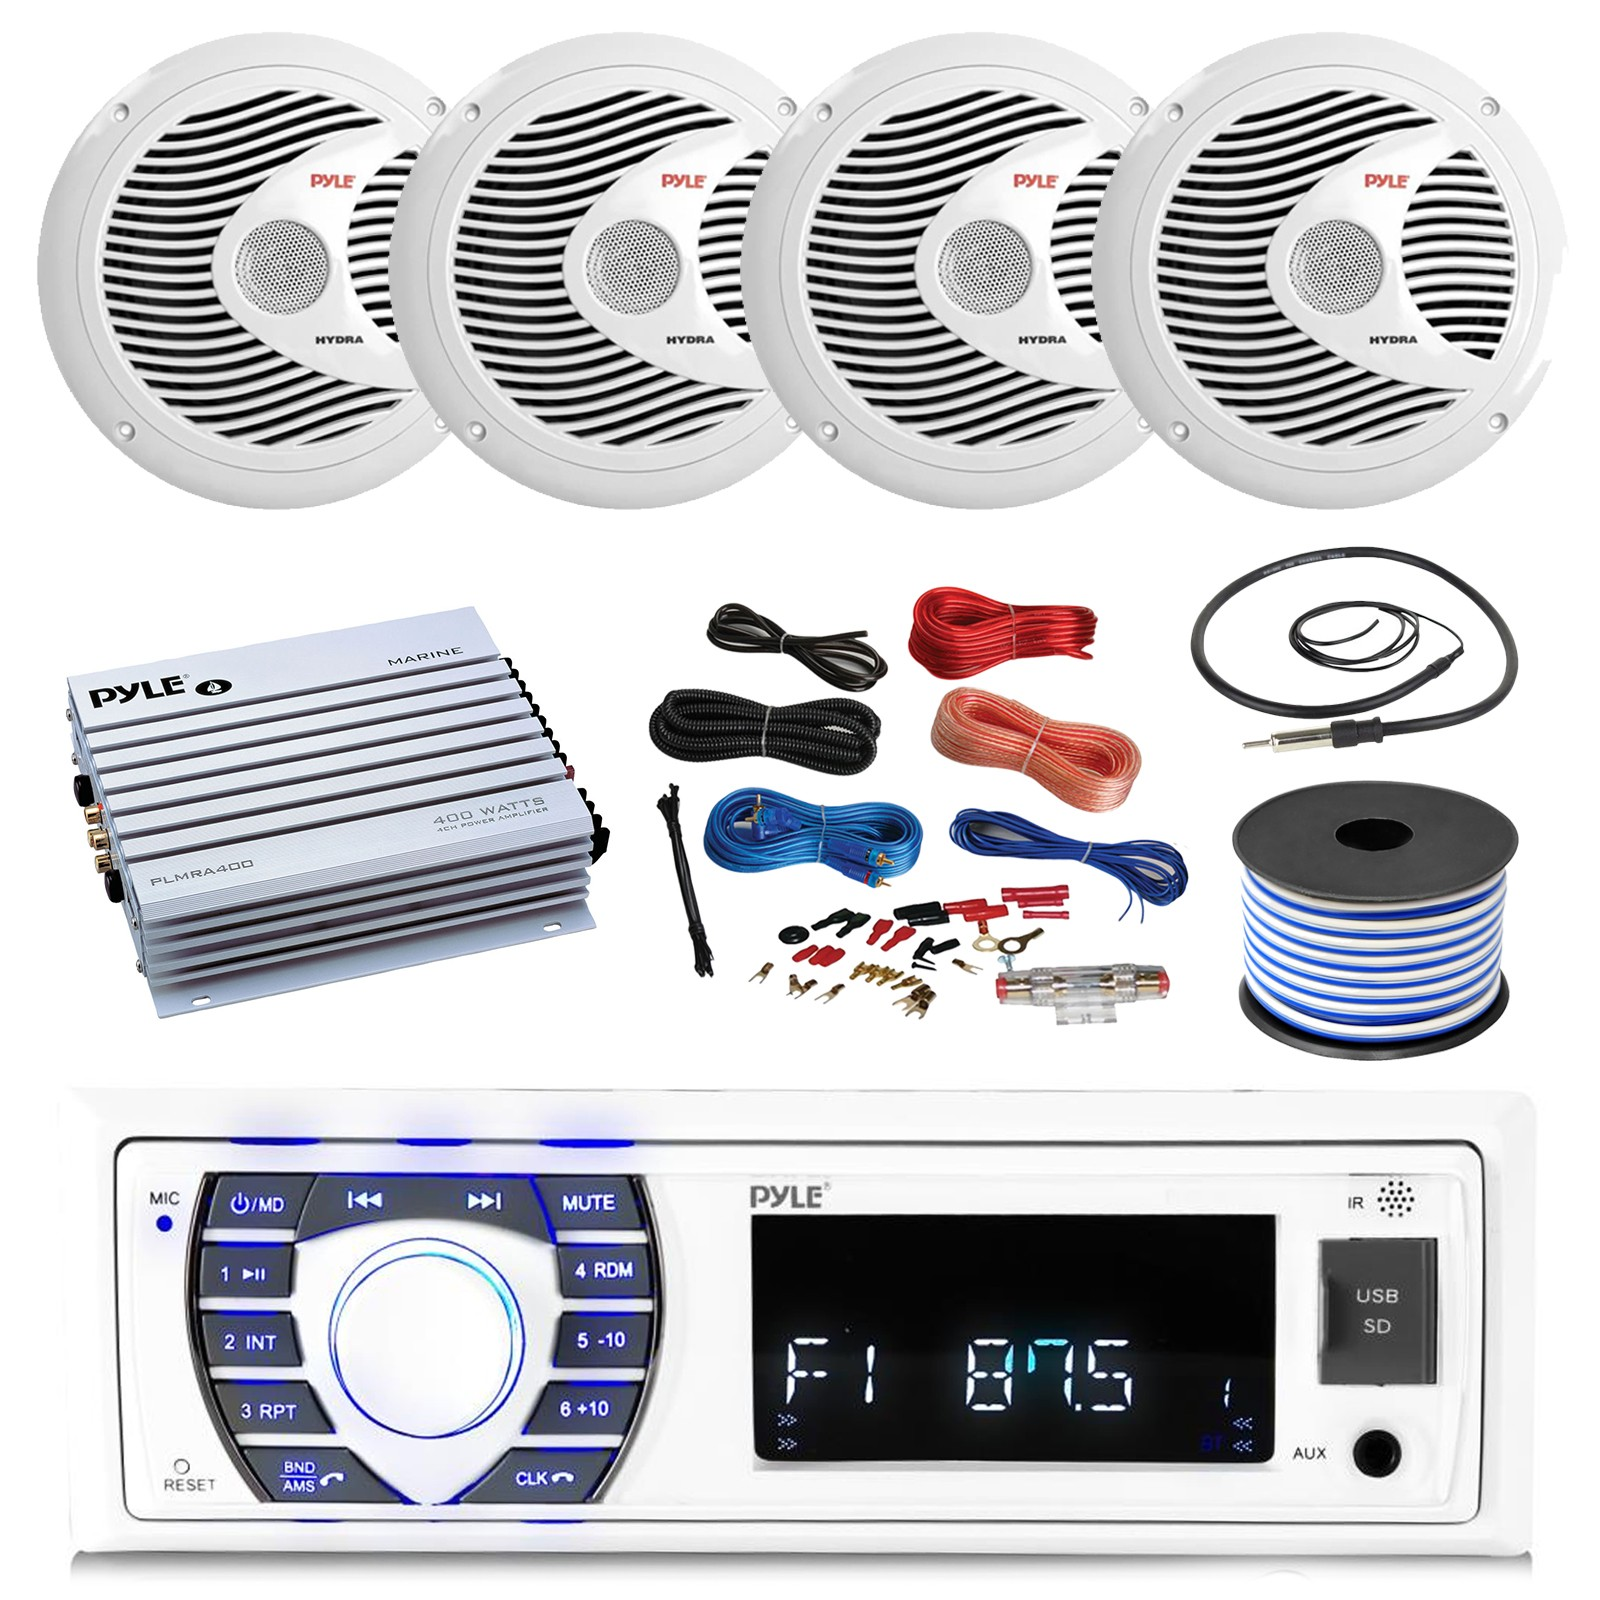 Pyle Hydra Amplifier Wiring 16 25 Bay Boat Pyle Bluetooth Marine Stereo Receiver 4 X Pyle 150w 6 5 Marine Speakers White Pyle 4 Channel Waterproof Amplifier Pyle Amp Of Pyle Hydra Amplifier Wiring